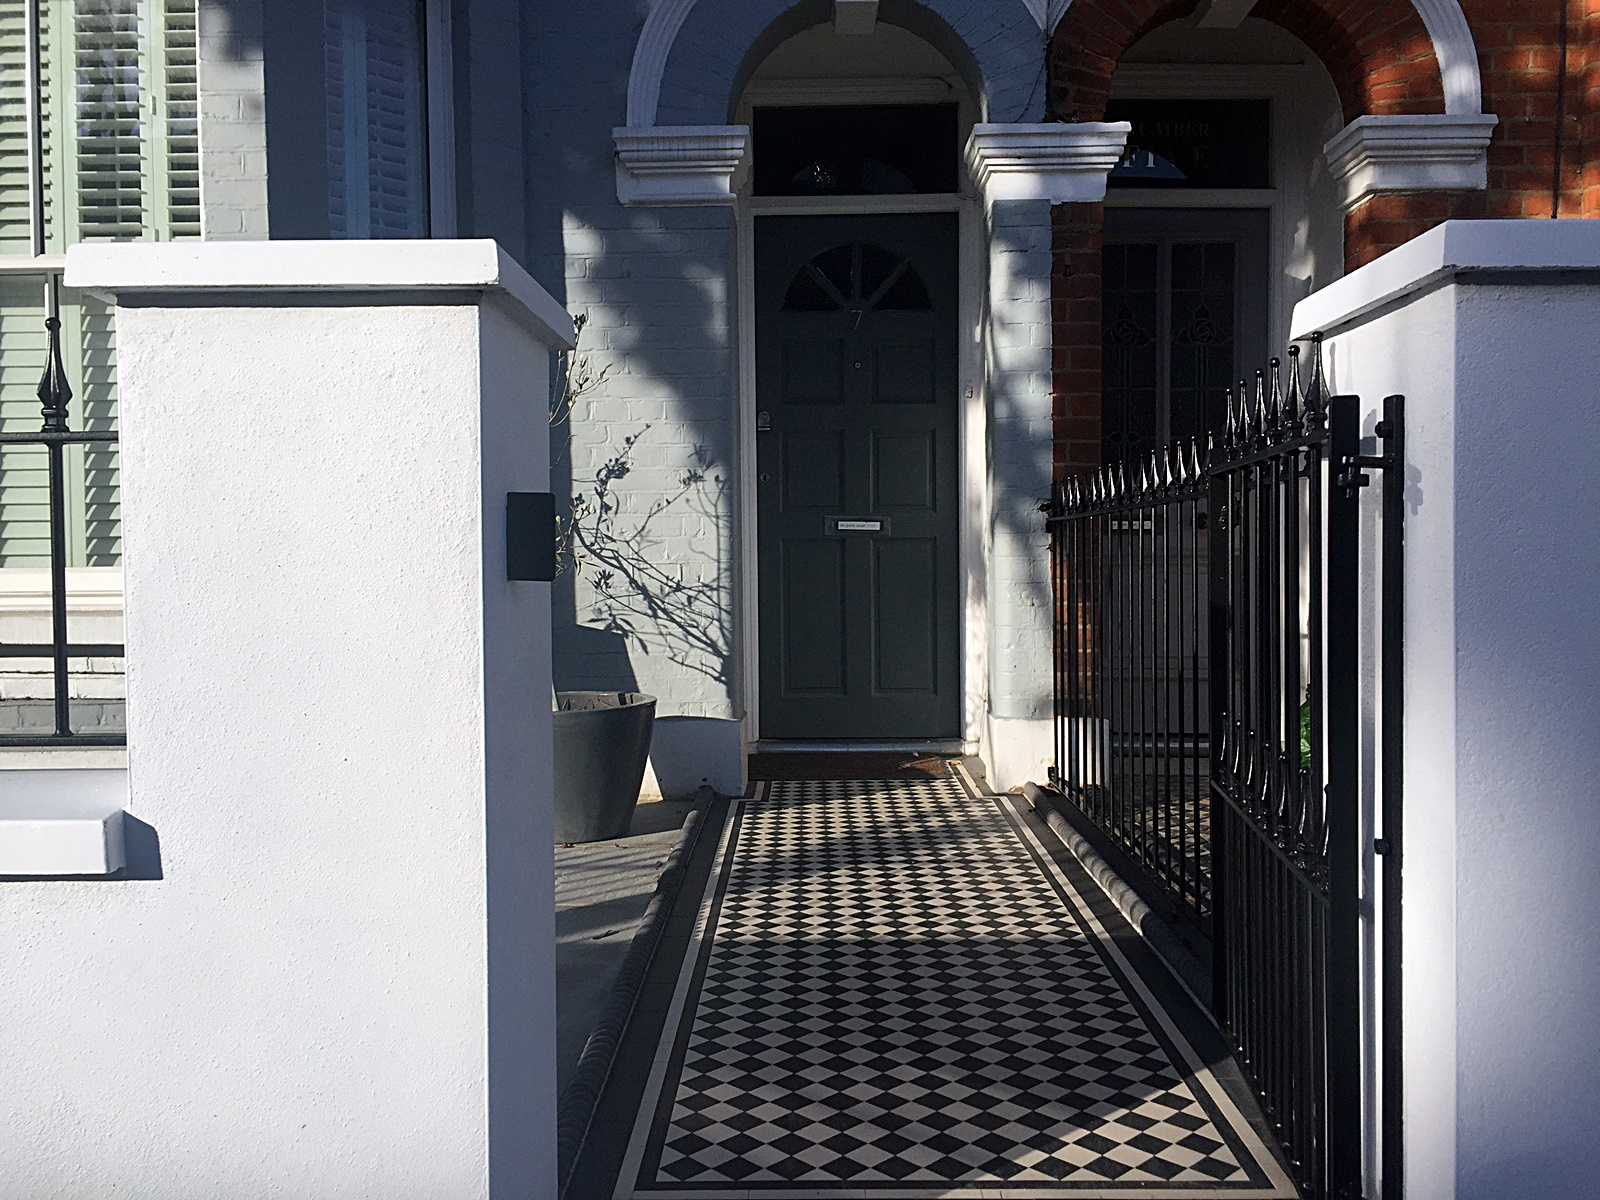 metal-gate-rails-white-render-wall-painting-path-black-and-white-victorian-mosaic-london-fulham-chelsea-kensington-mayfair